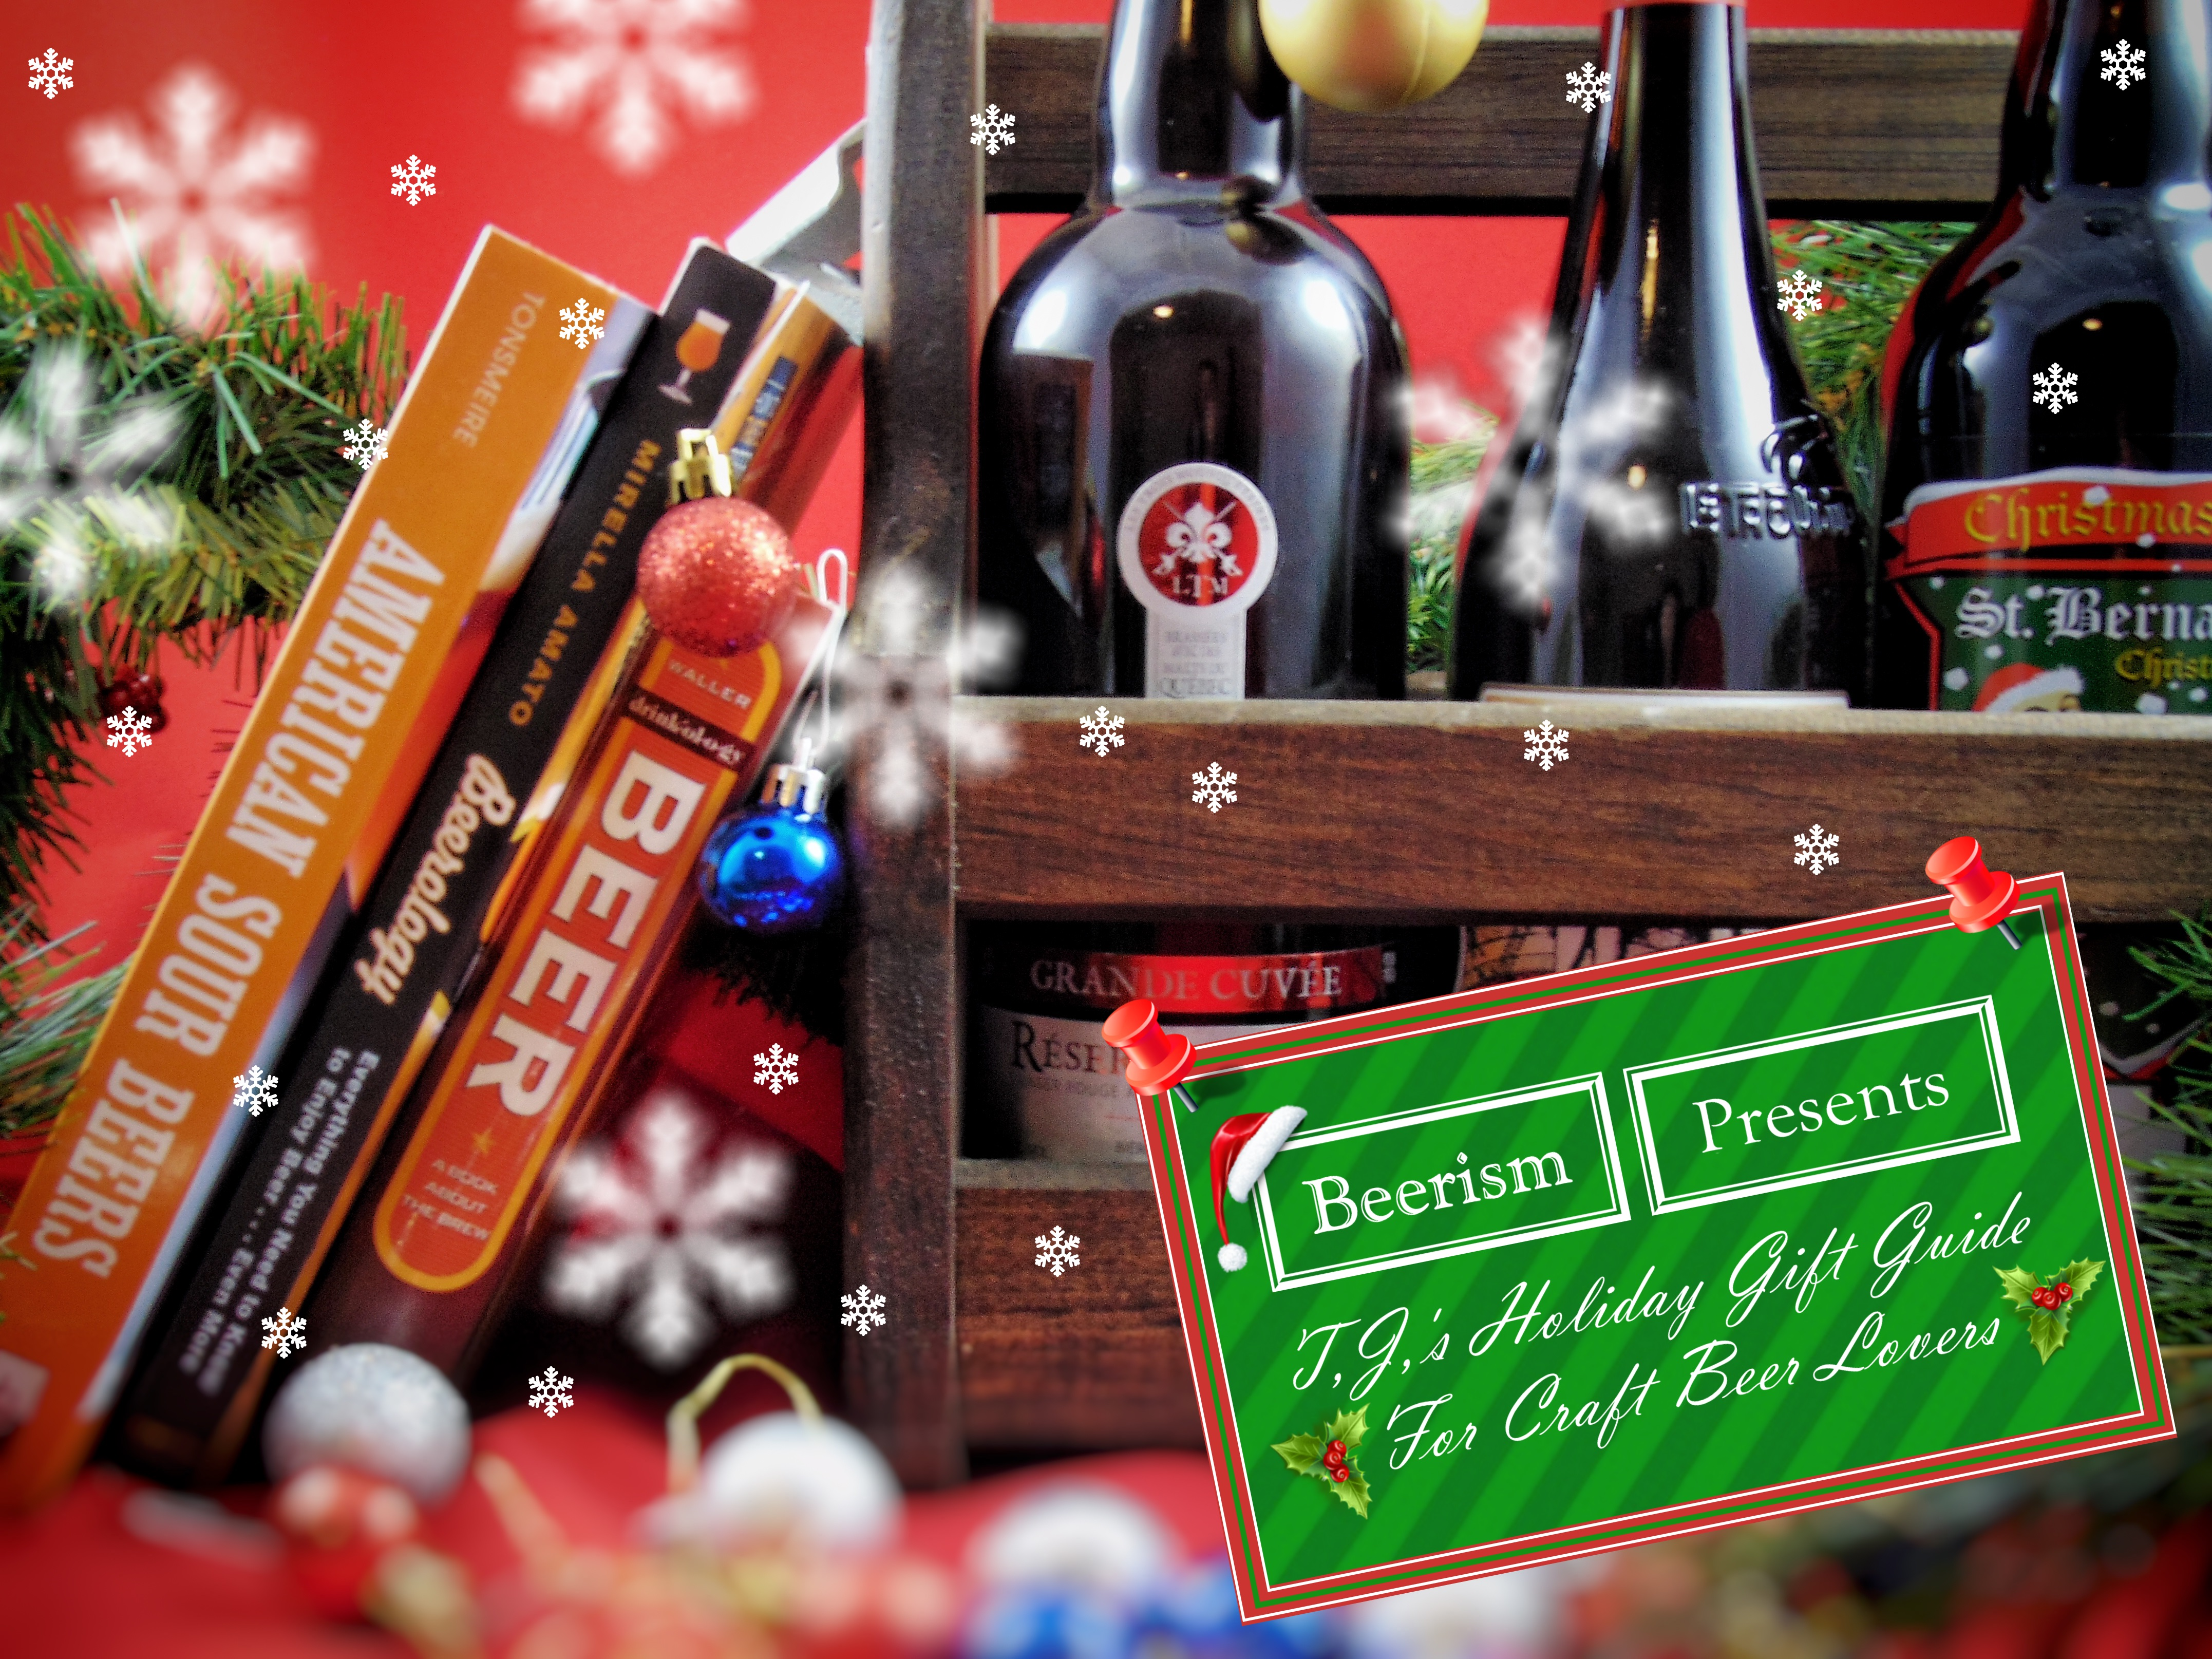 Beerism Presents: T.J.'s Holiday Gift Guide For Craft Beer